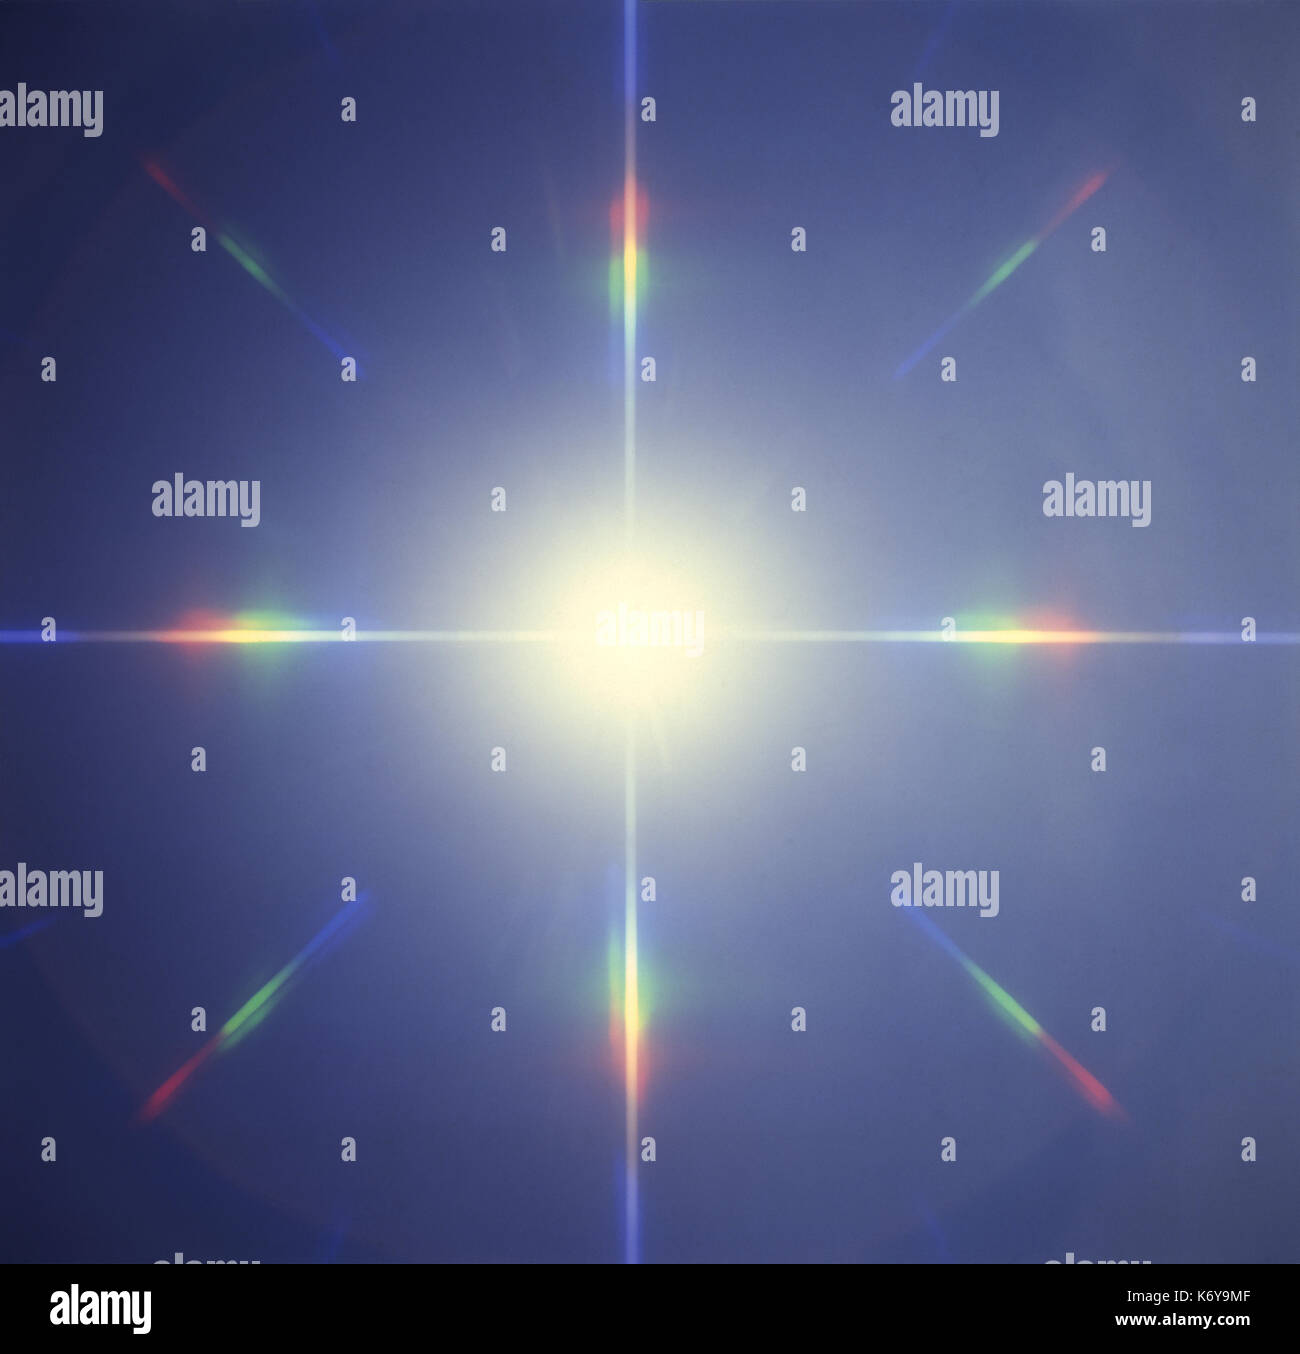 Star pattern with diffraction rainbow spectrum colors - Stock Image